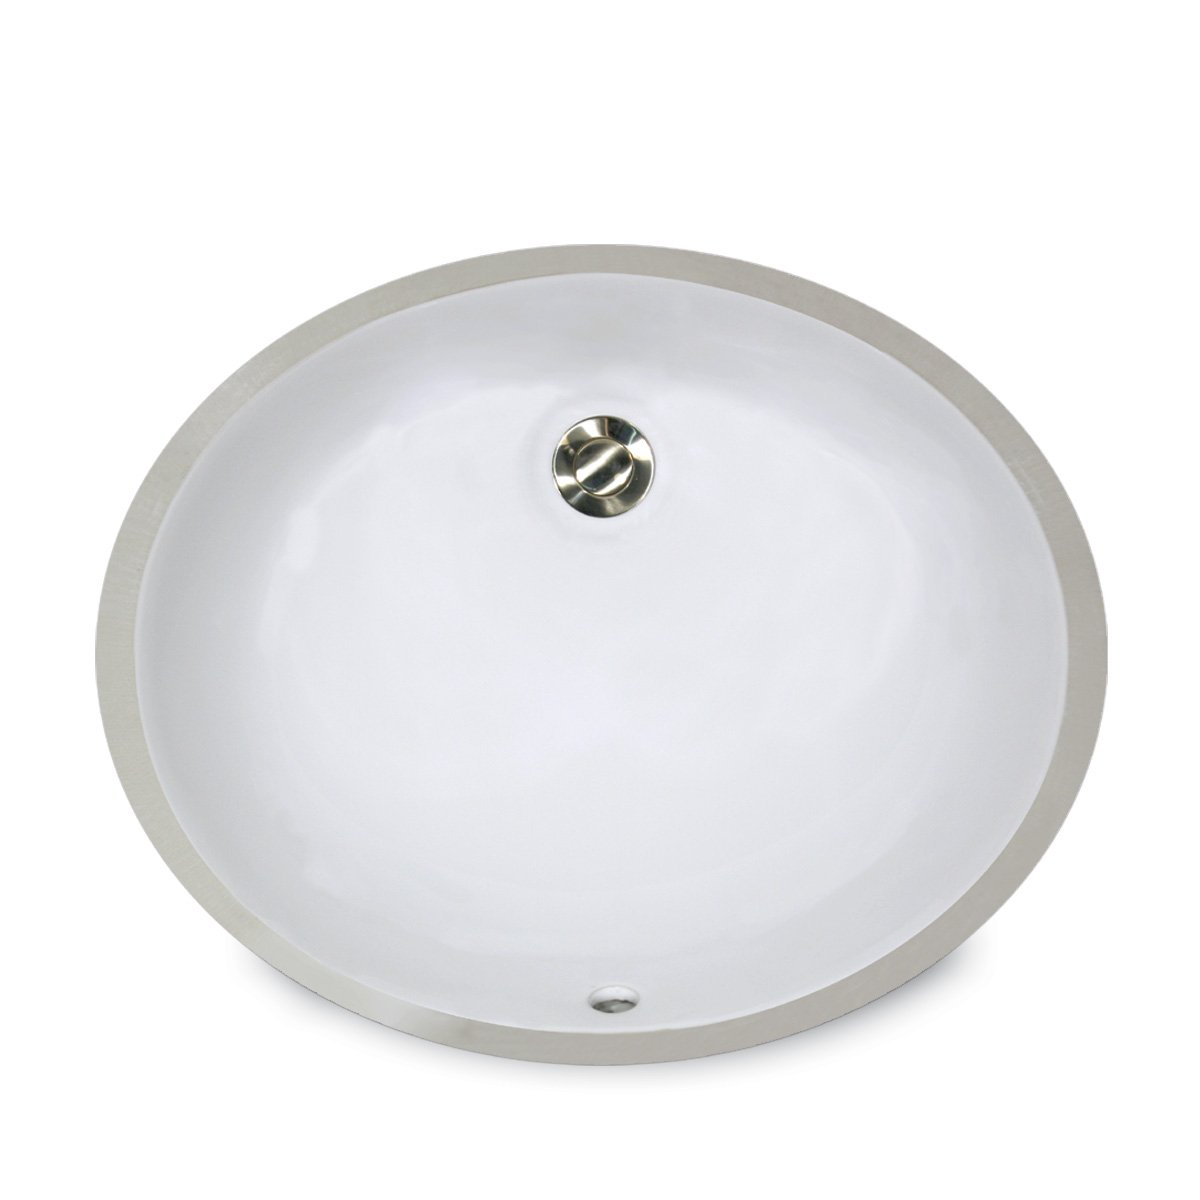 Nantucket Sinks UM-15x12-W 15-Inch by 12-Inch Oval Ceramic Undermount Vanity Sink, White by Nantucket Sinks